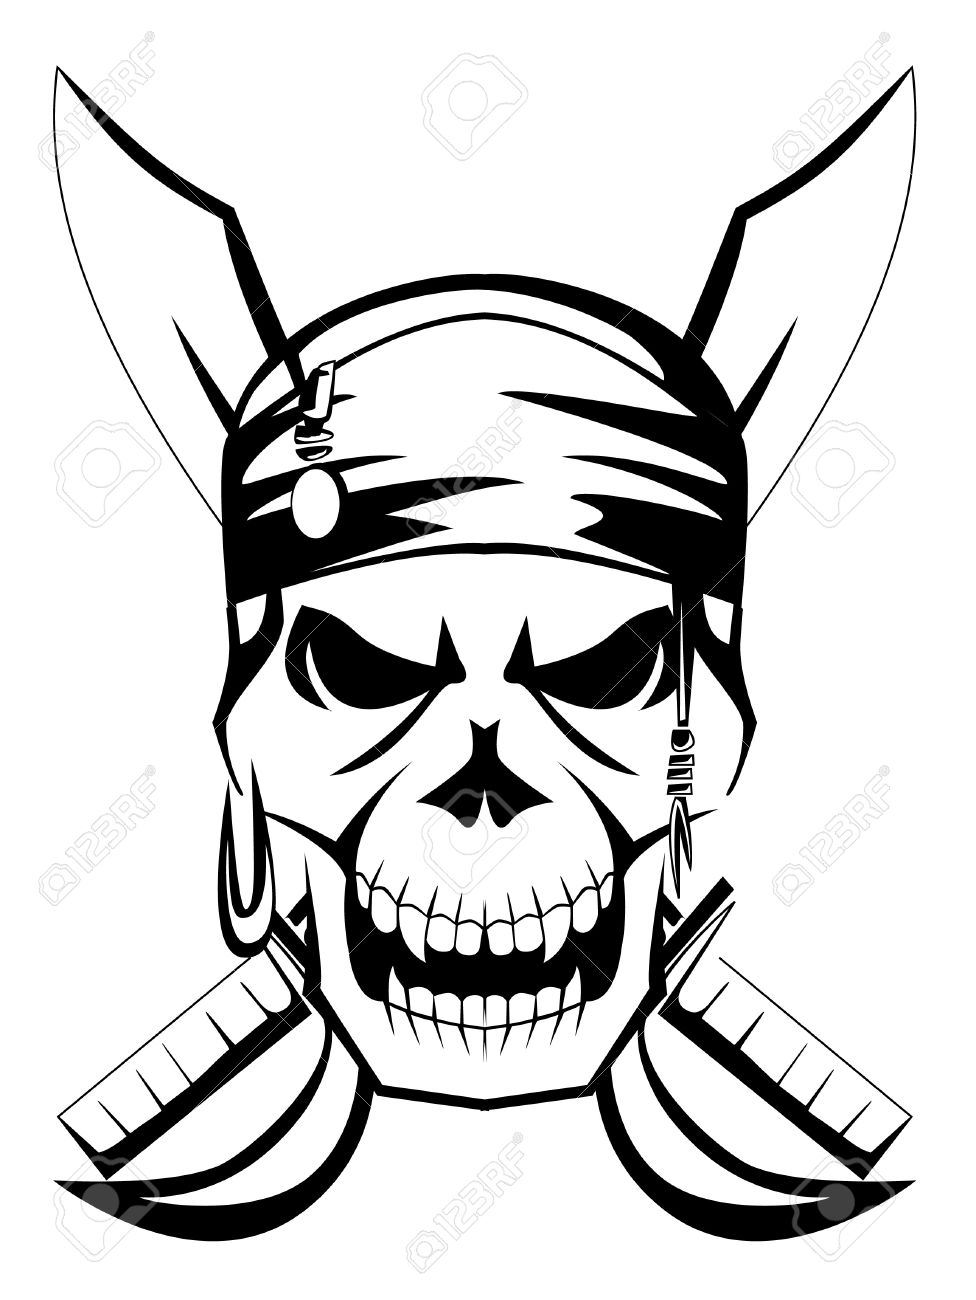 pirate skull sword Stock Vector - 15041636